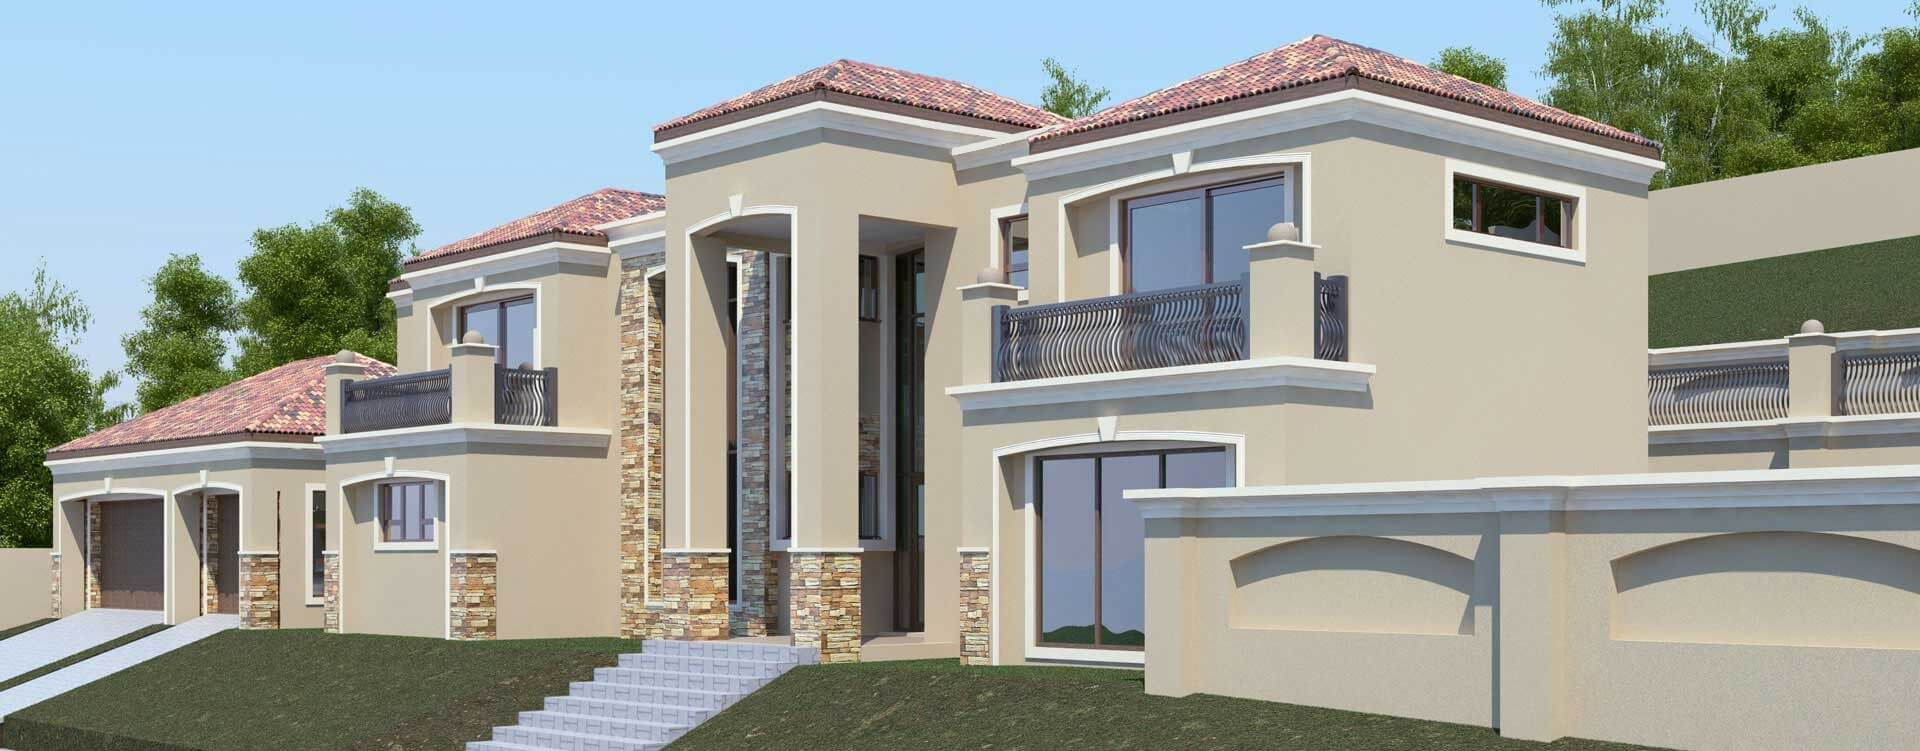 Modern Tuscan Style 5 Bedroom House Plan Double Storey Floor Plans Nethouseplans Architectural